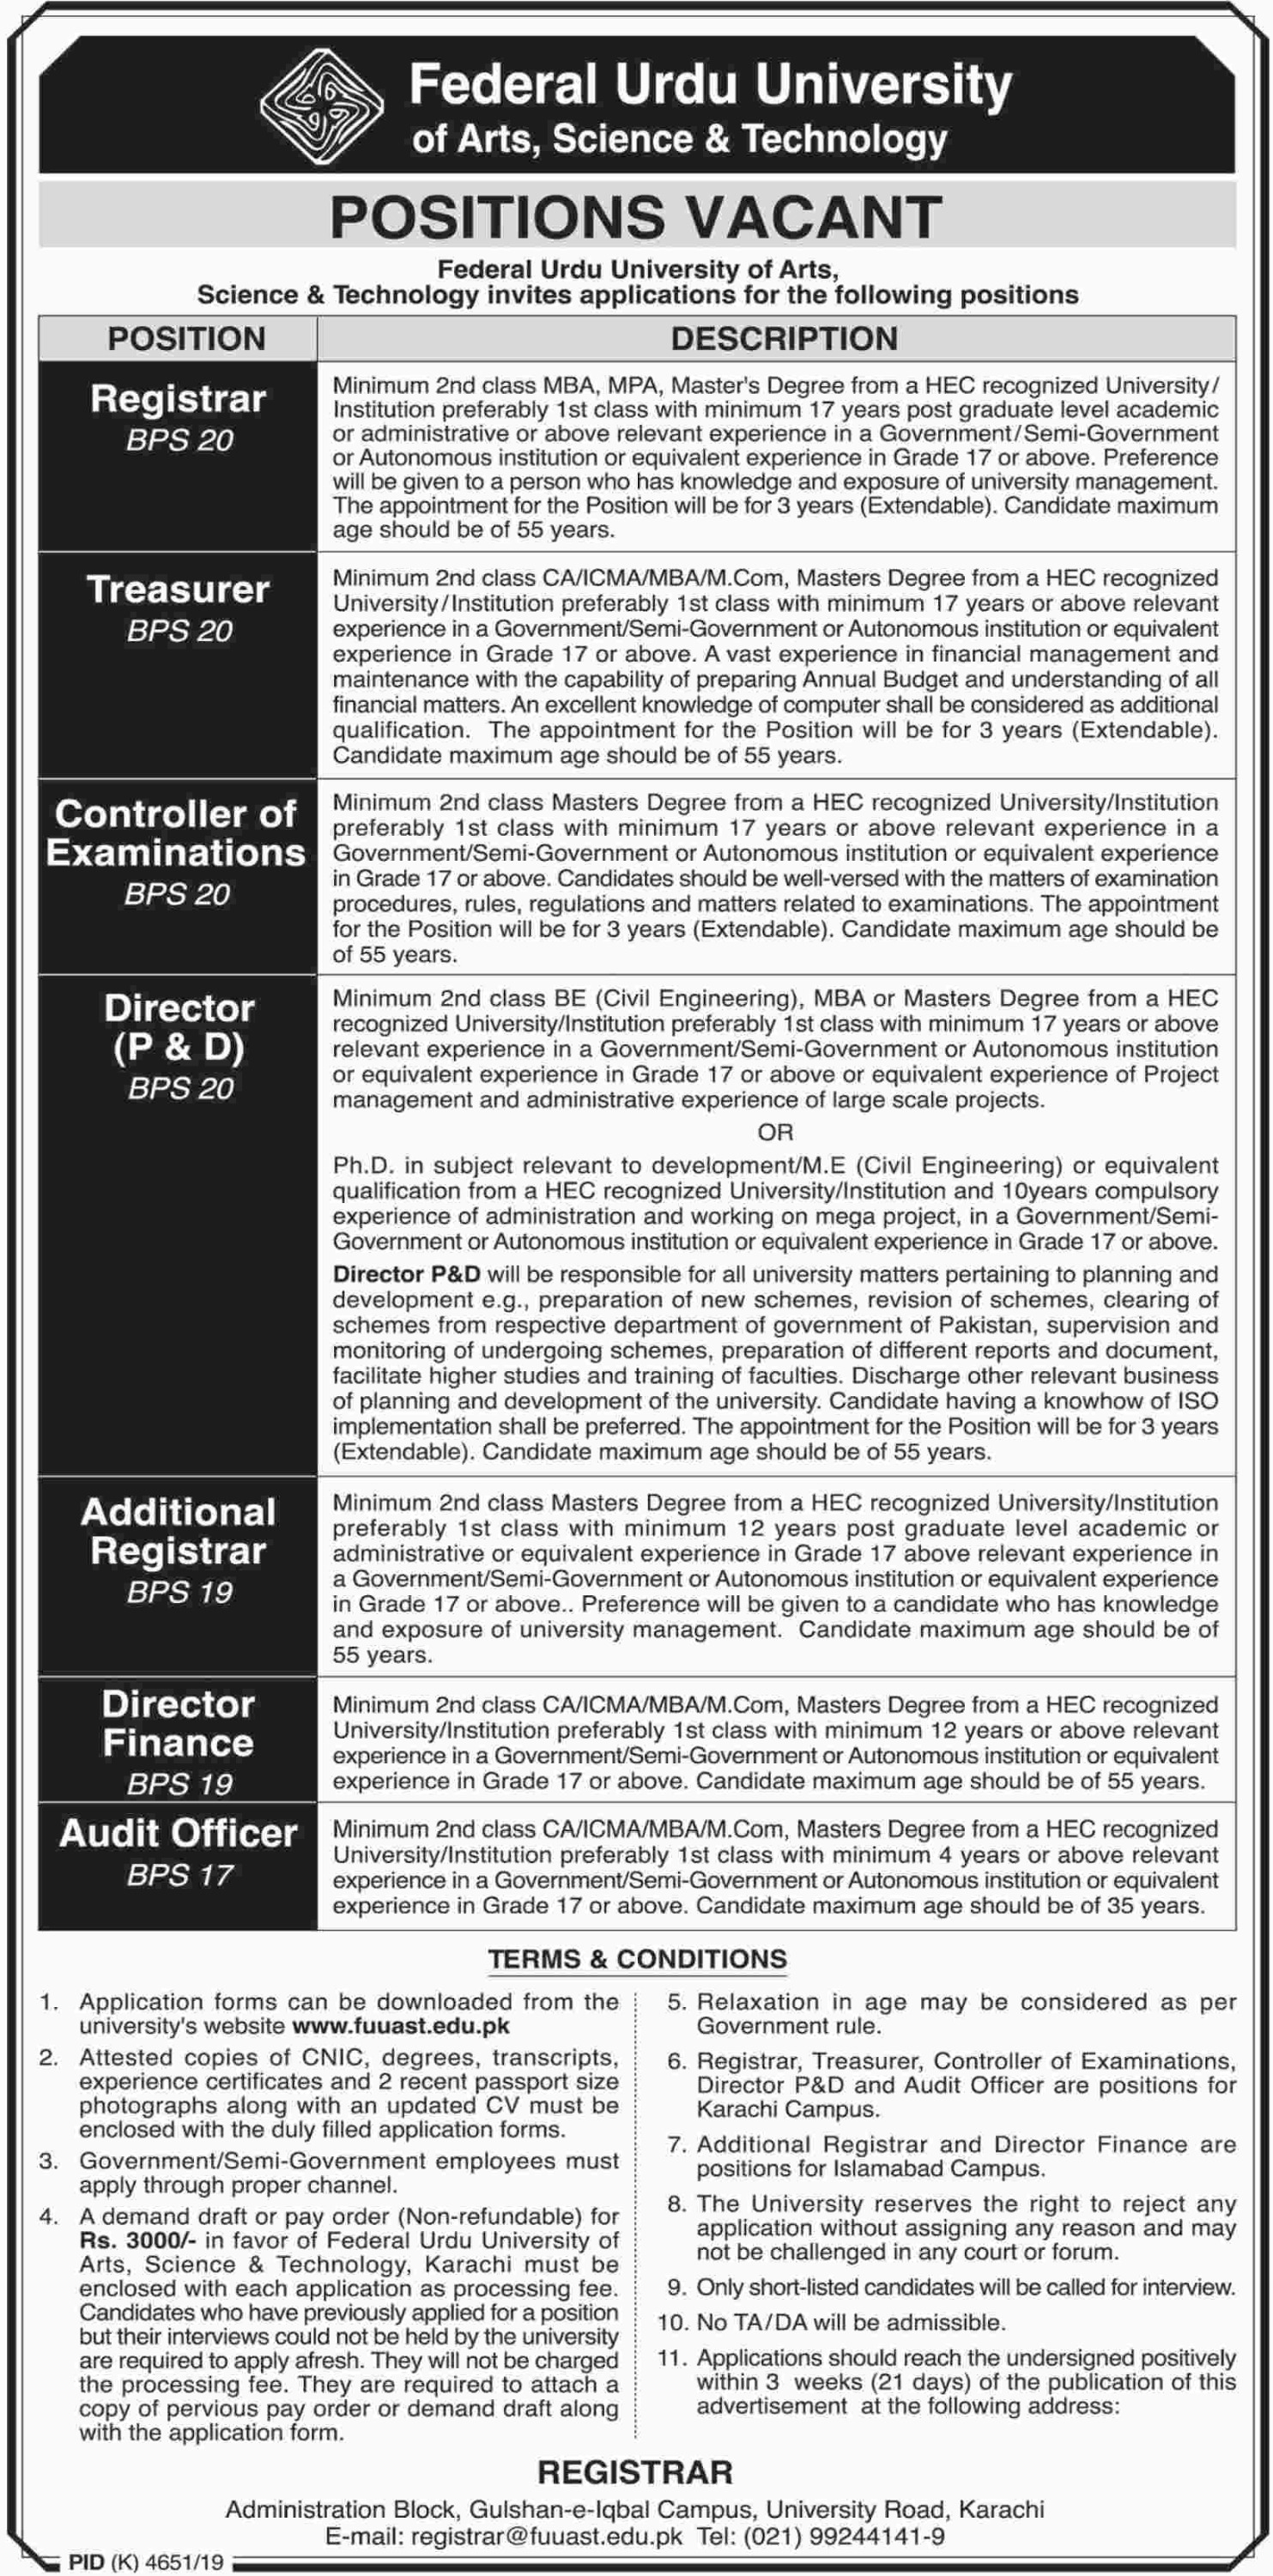 Federal Urdu University of Arts Science & Technology Jobs 2019